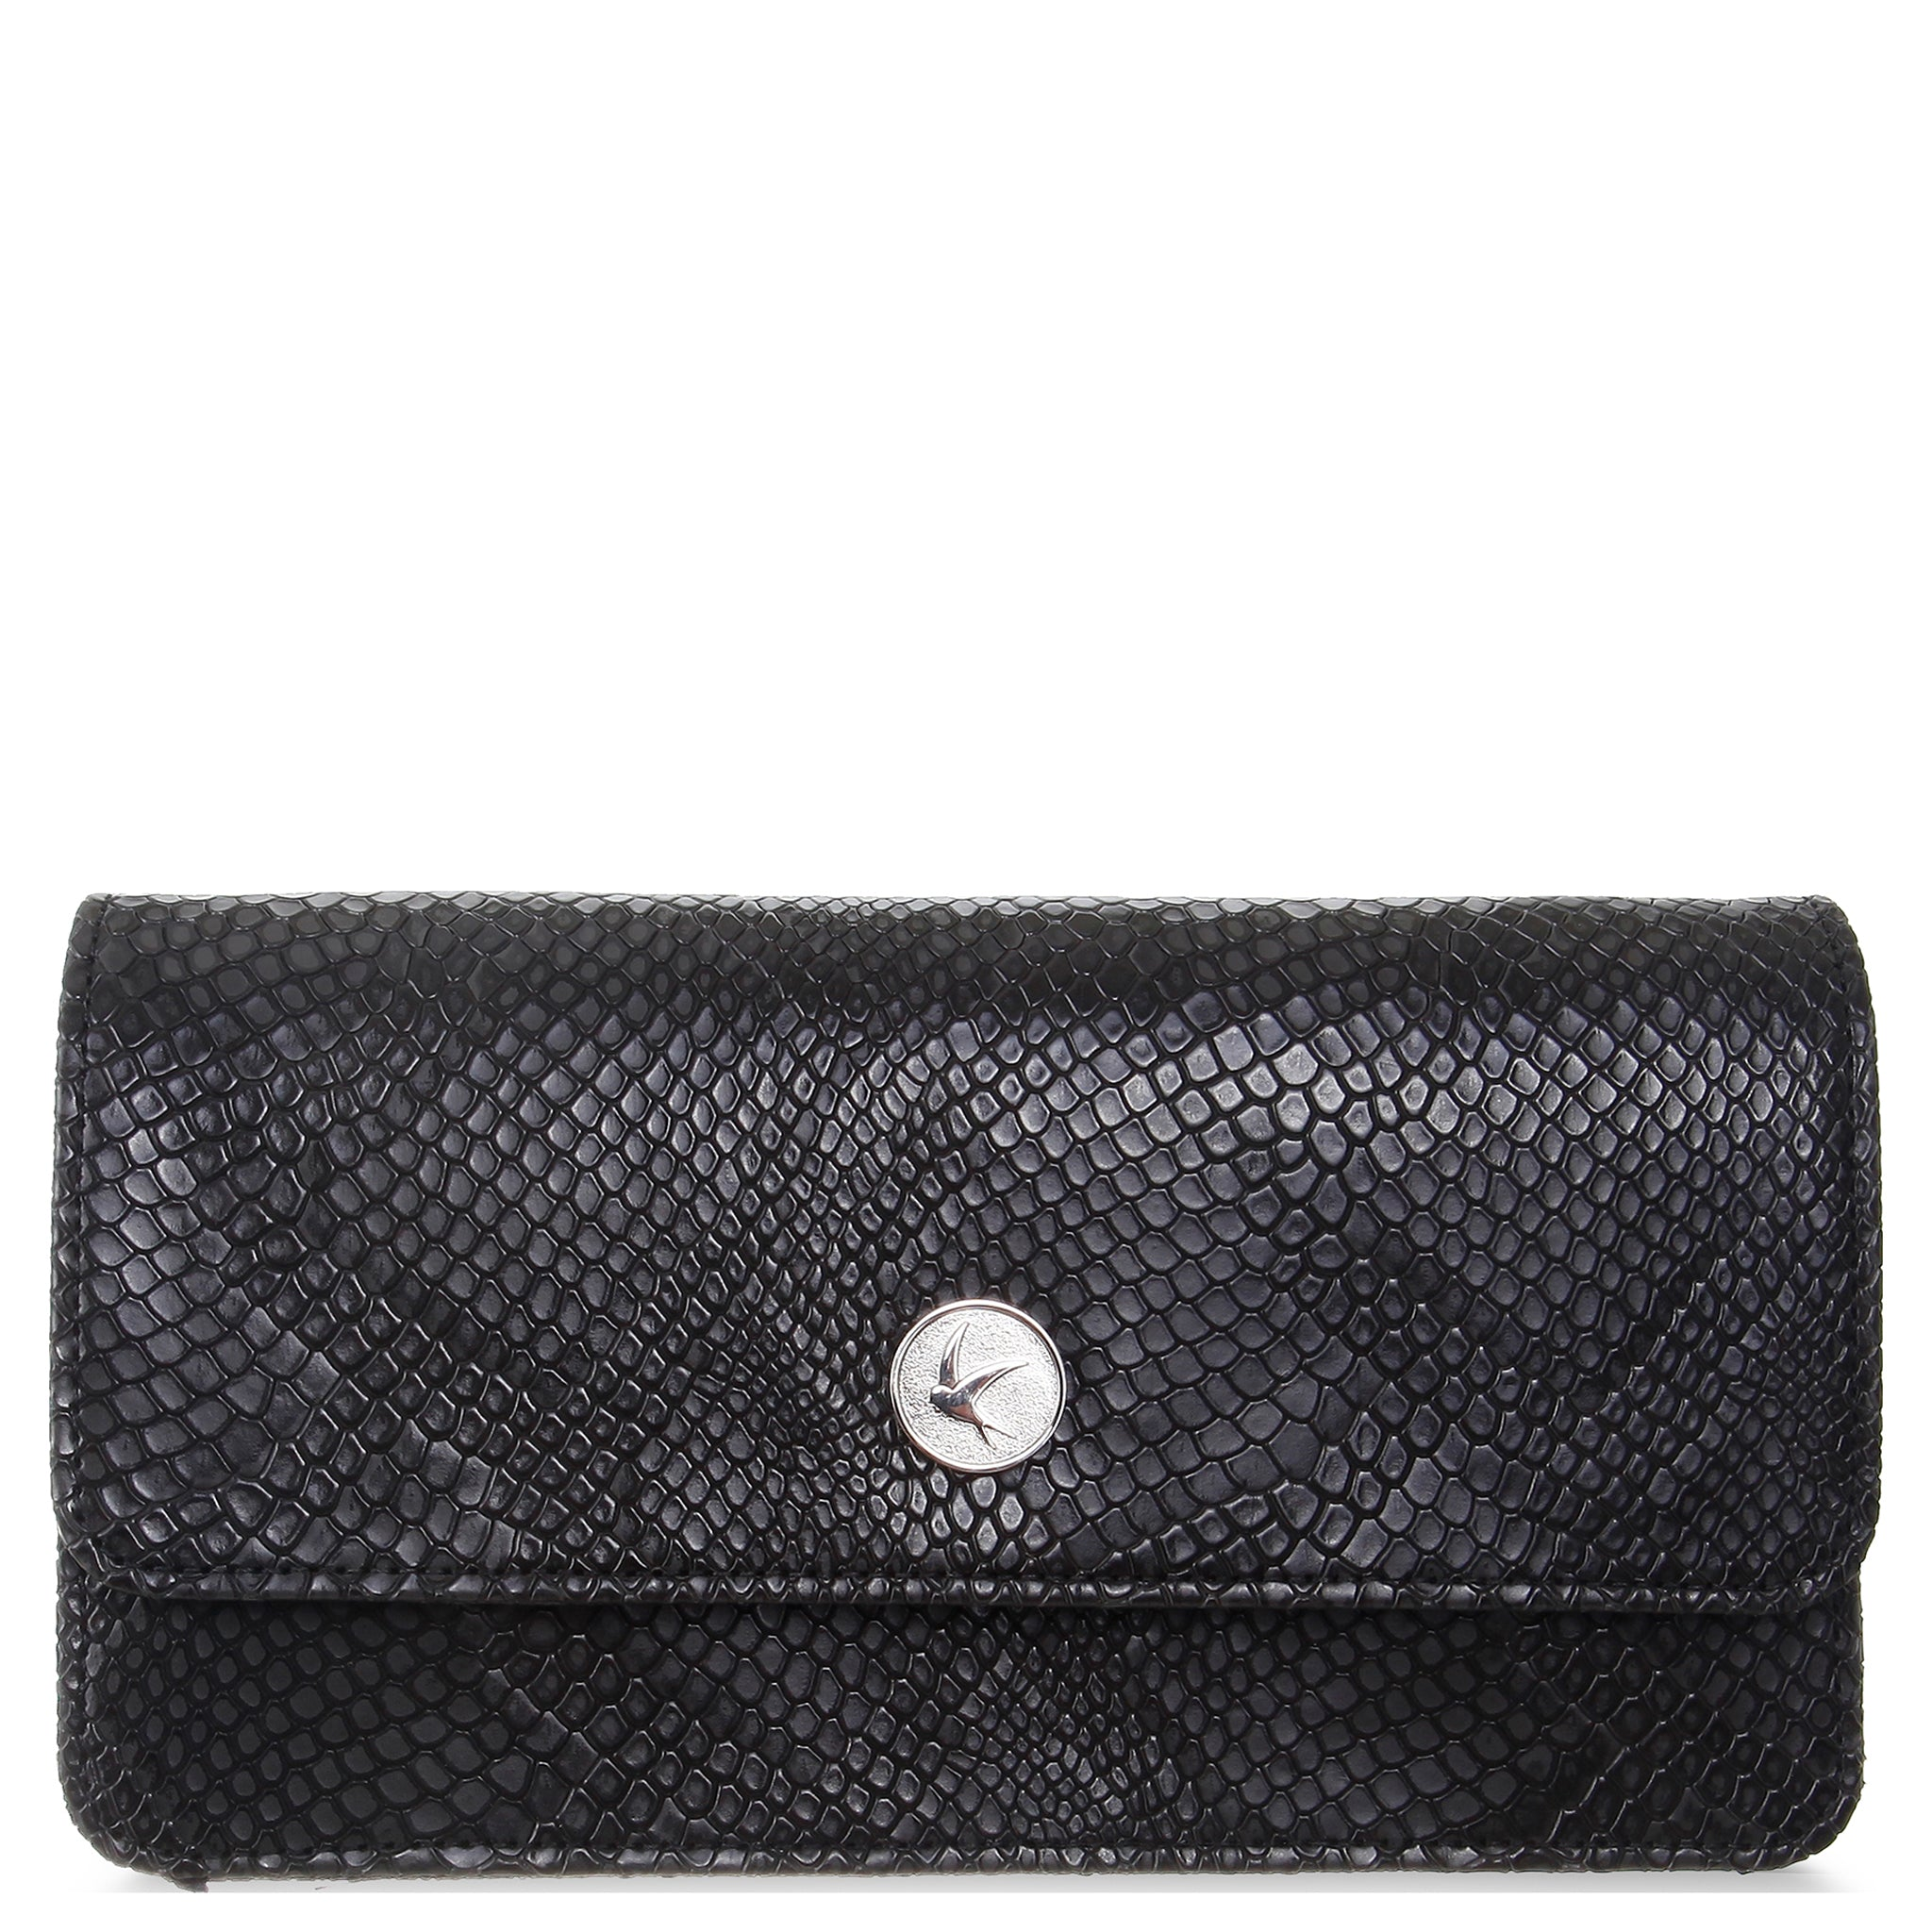 Black Faux Snakeskin Wallet Purse with Chain, Sara, Svala